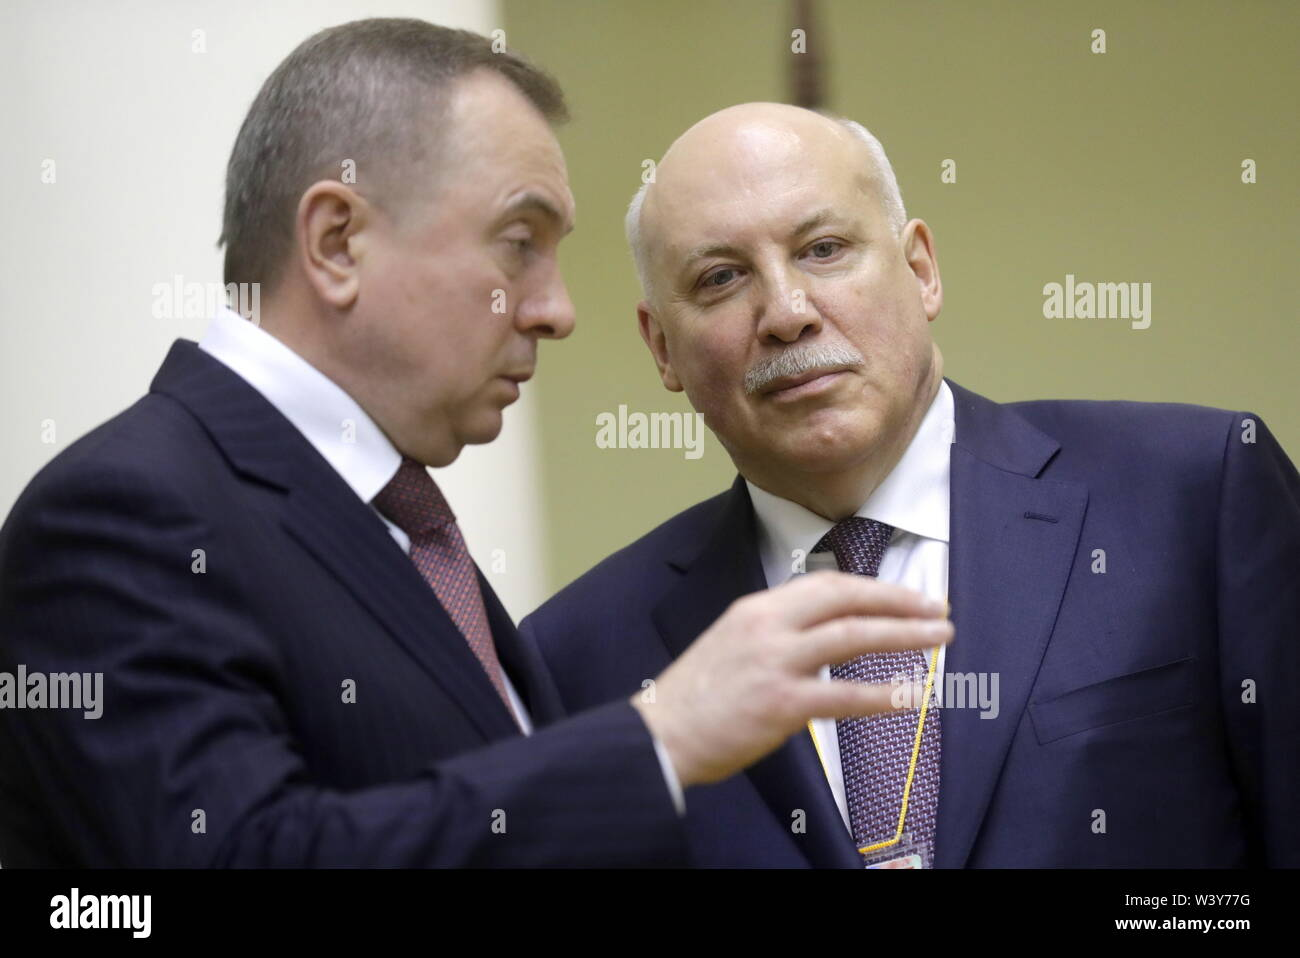 St Petersburg, Russia. 18th July, 2019. ST PETERSBURG, RUSSIA - JULY 18, 2019: Belarus' Foreign Minister Vladimir Makei (L) and Russia's Ambassador to Belarus Dmitry Mezentsev attend a meeting between the Presidents of Russia and Belarus at the Tauride Palace. Mikhail Metzel/TASS Credit: ITAR-TASS News Agency/Alamy Live News - Stock Image